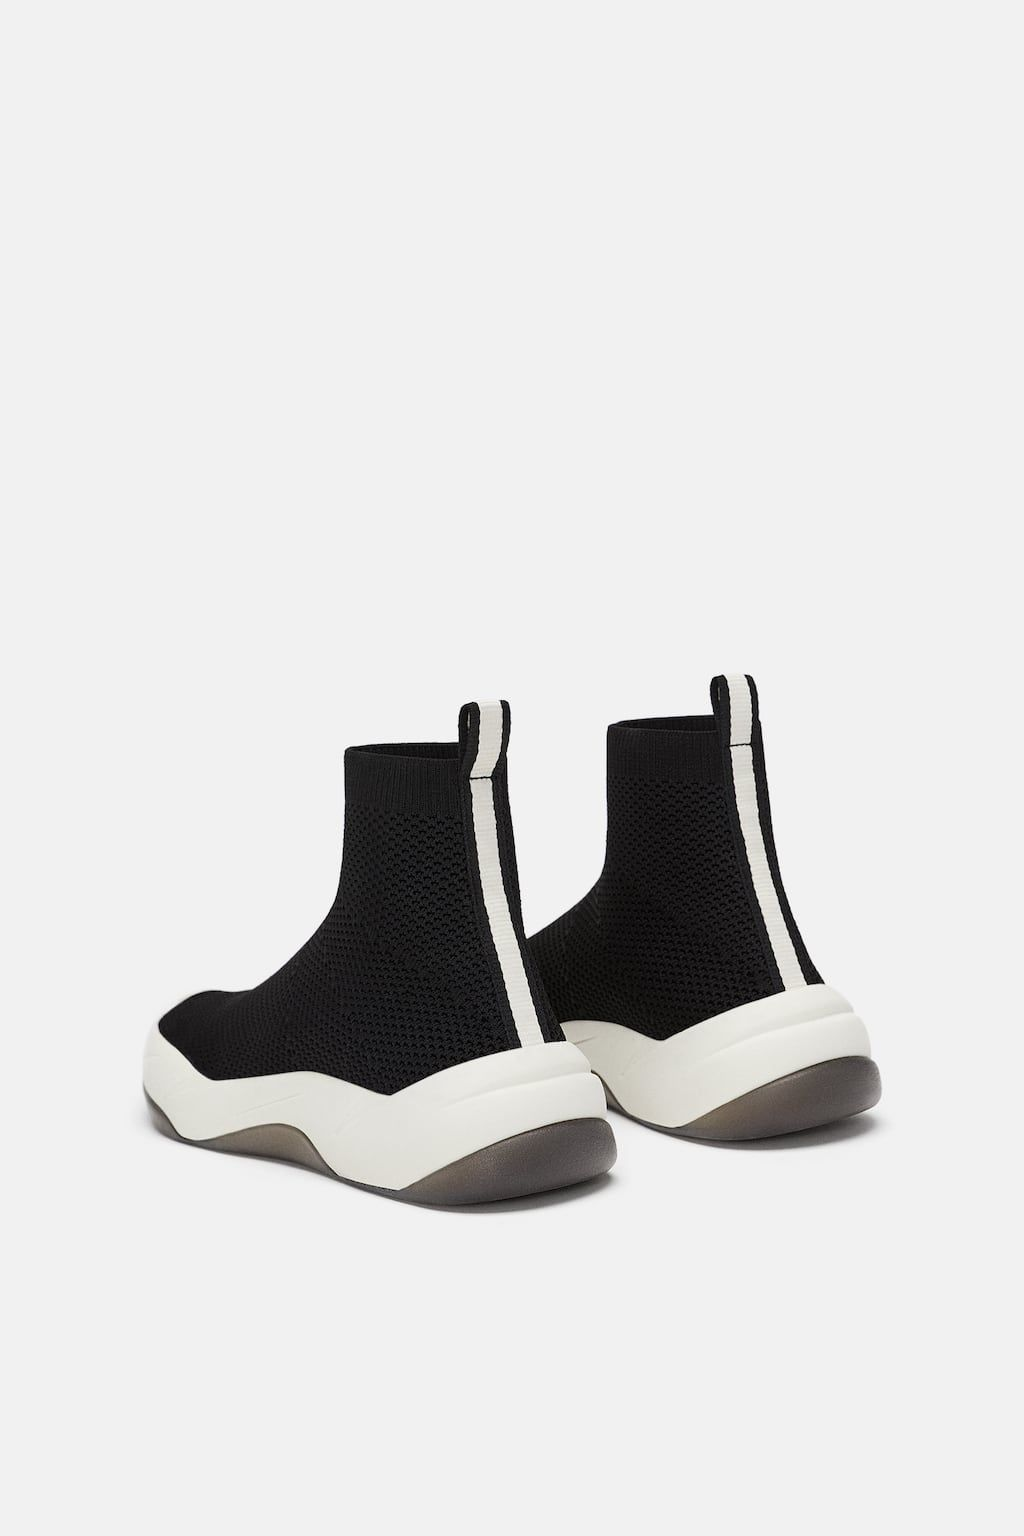 ca32a0ef4 Image 4 of ELASTIC FABRIC ATHLETIC SHOES from Zara